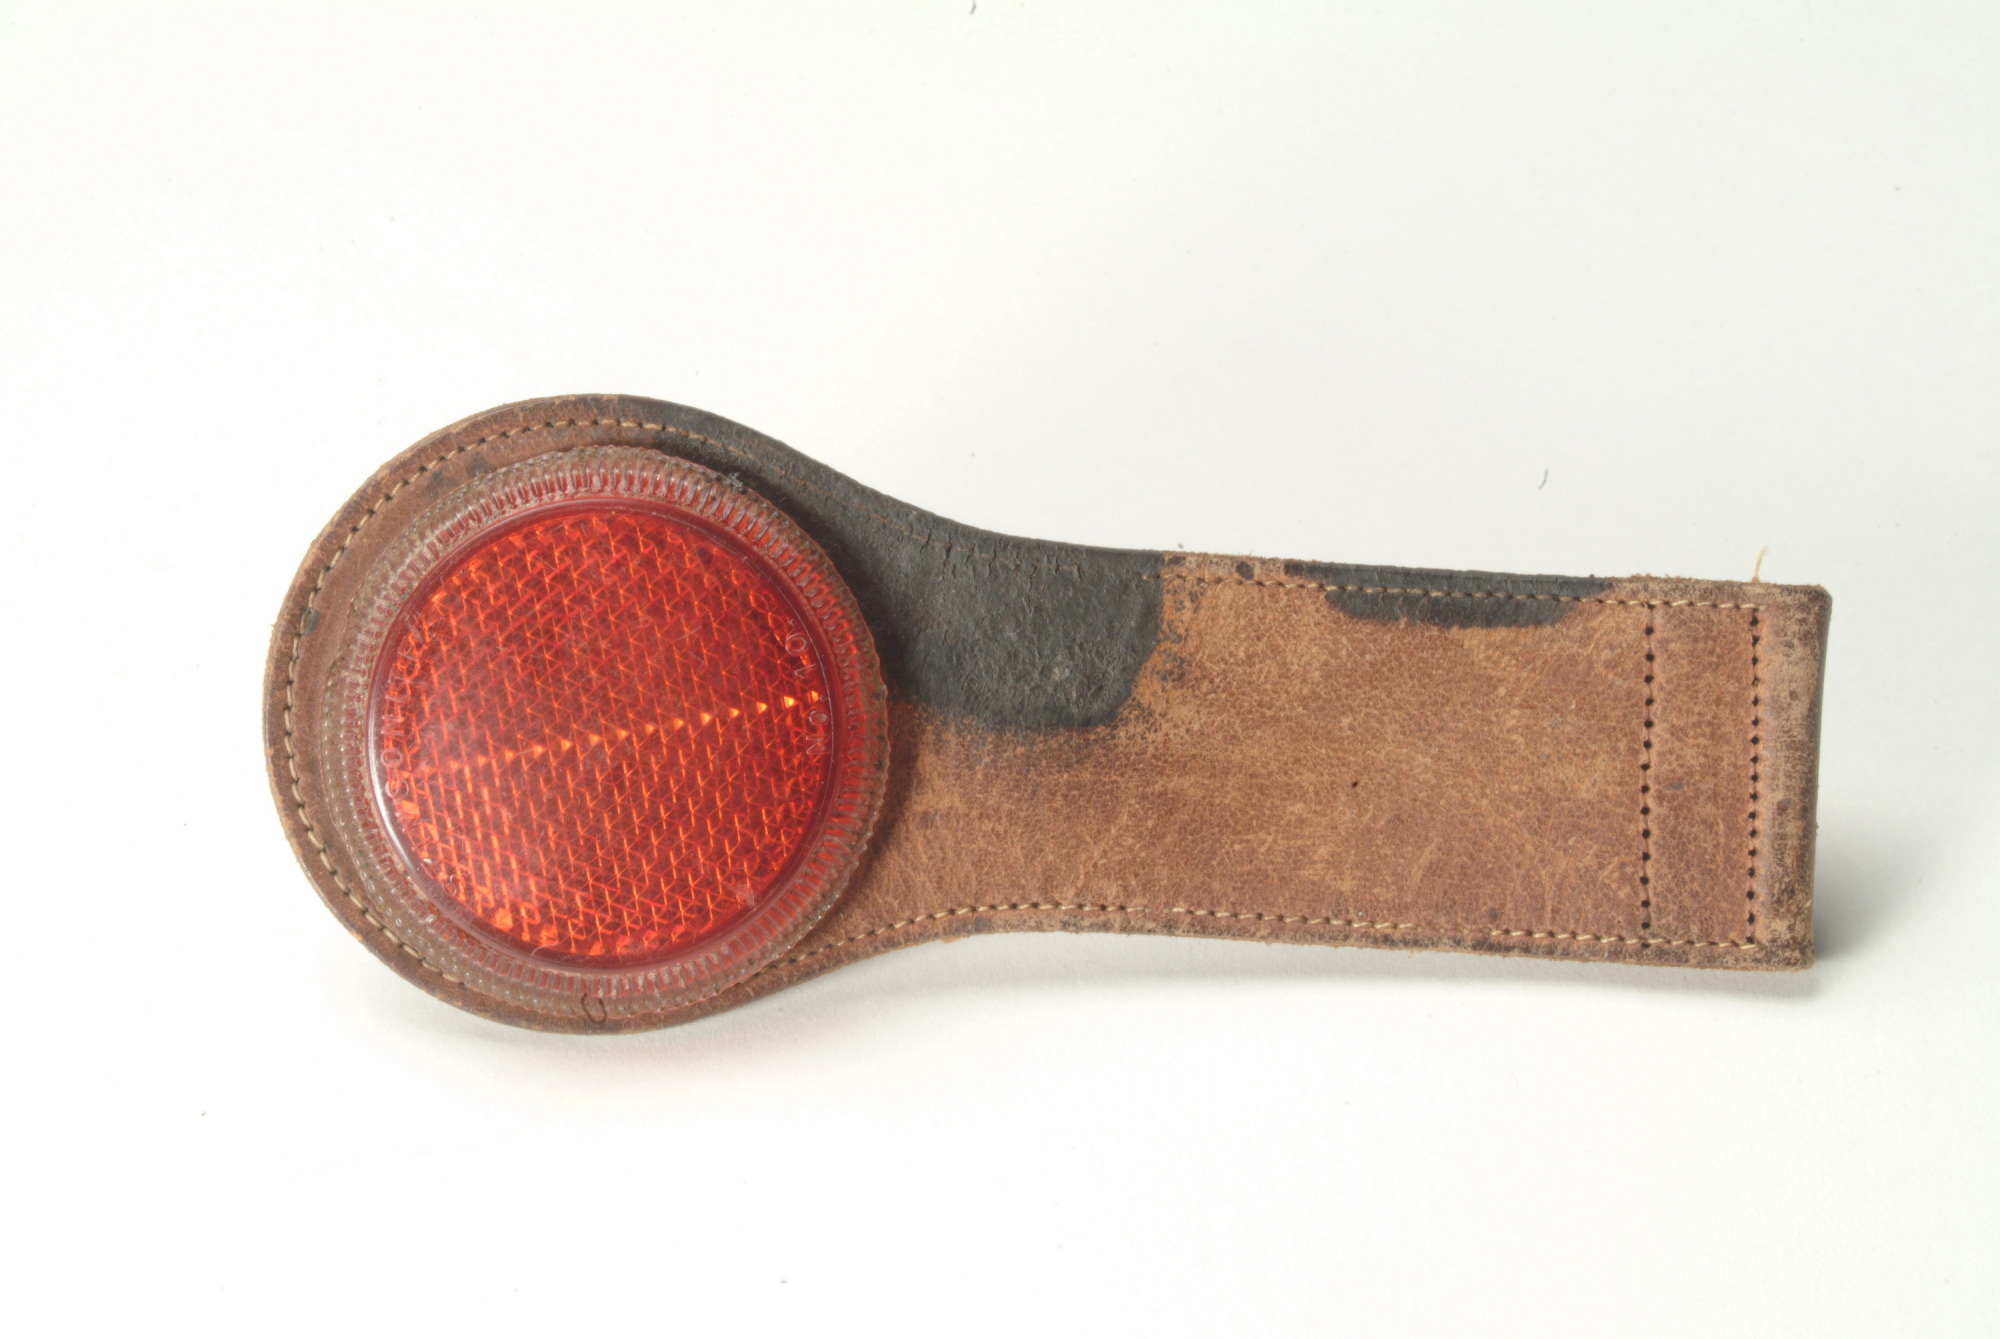 Safety reflector, 1930s